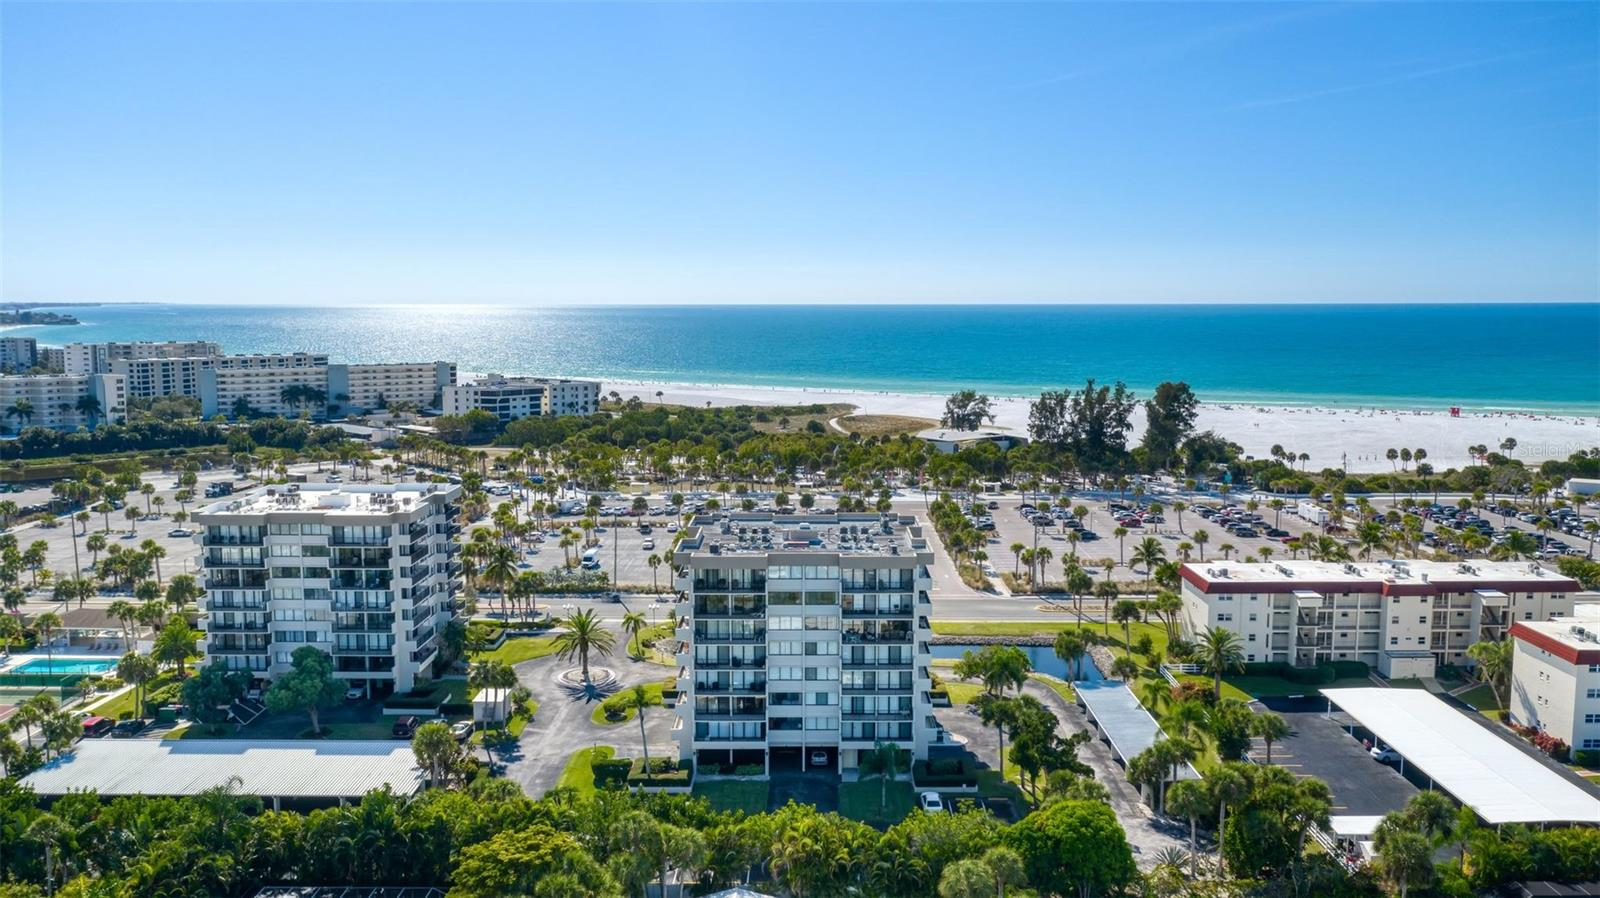 Condo for sale at 1055 Beach Rd #B-703, Sarasota, FL 34242 - MLS Number is A4497683